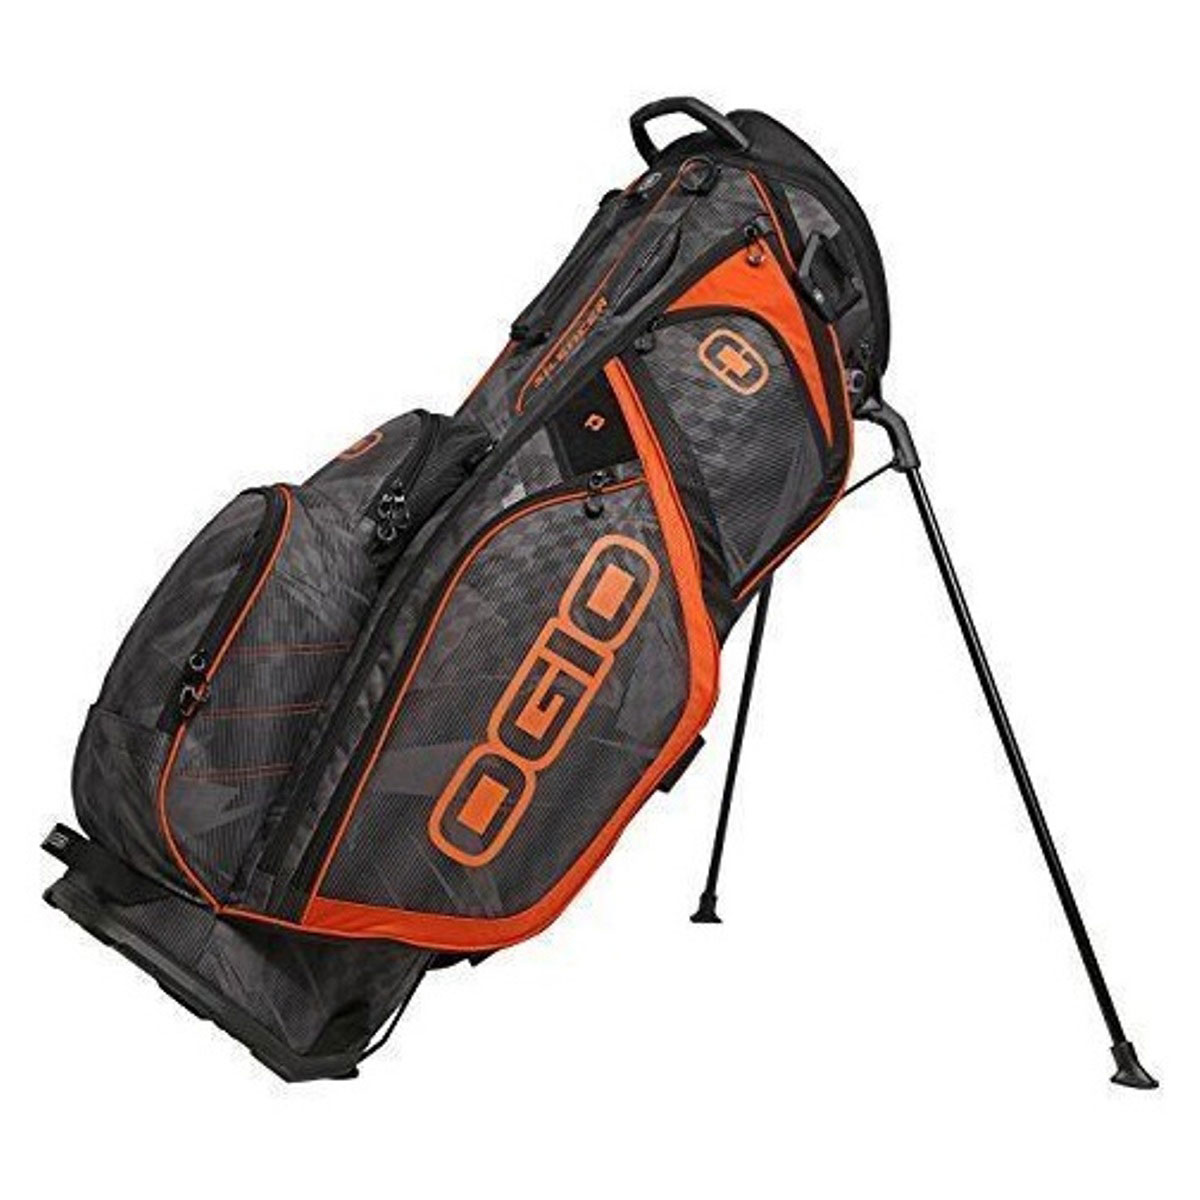 7 way golf stand bag how to wire a gfci outlet diagram ogio silencer carry 14 divider ebay